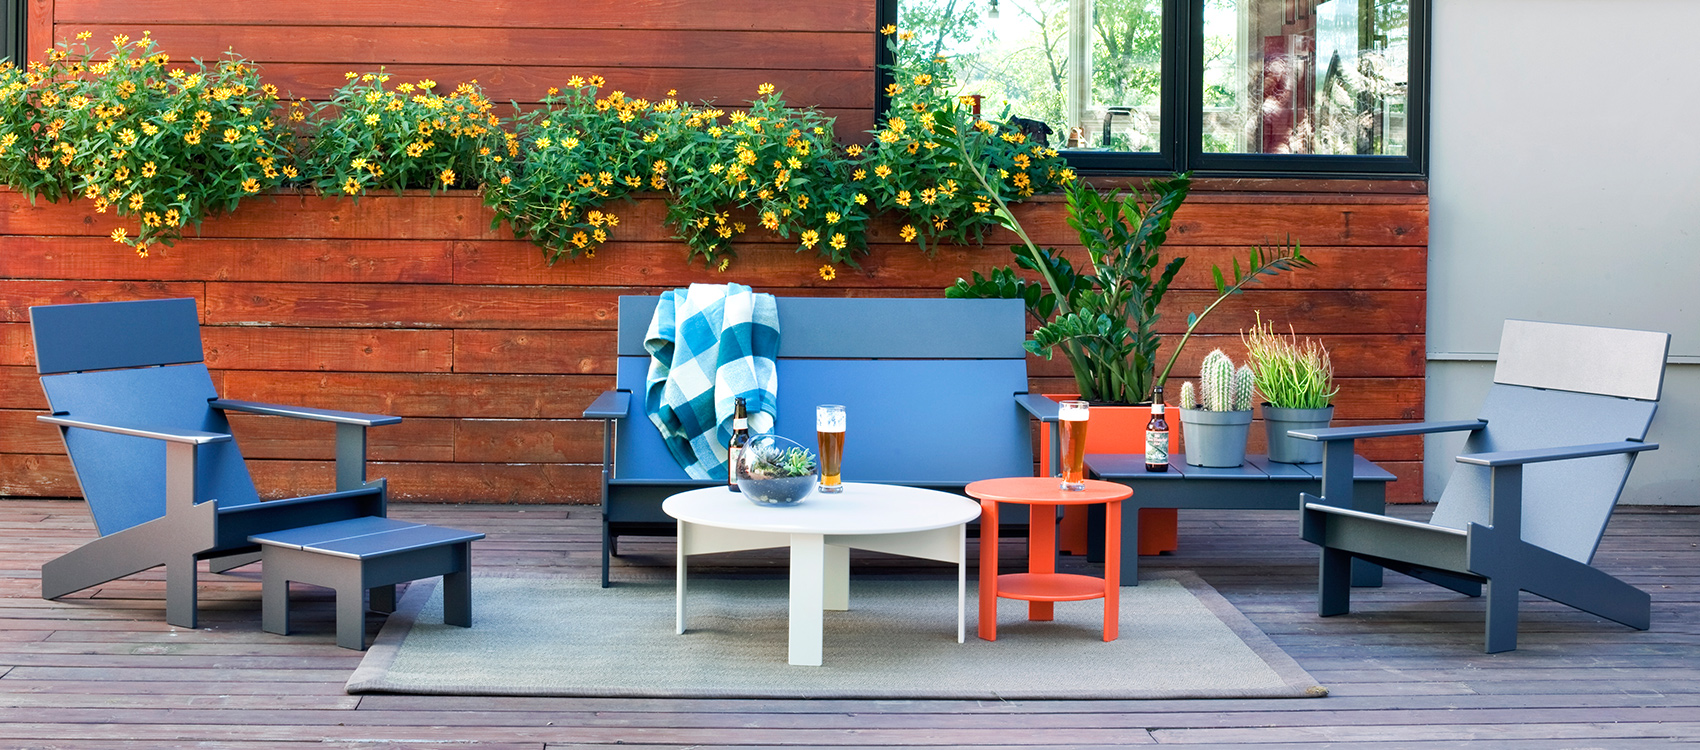 loll designs, loll, loll outdoor furniture, outdoor furniture, tableware, rocker, sofa, chair, side table, urban objects pensacola,